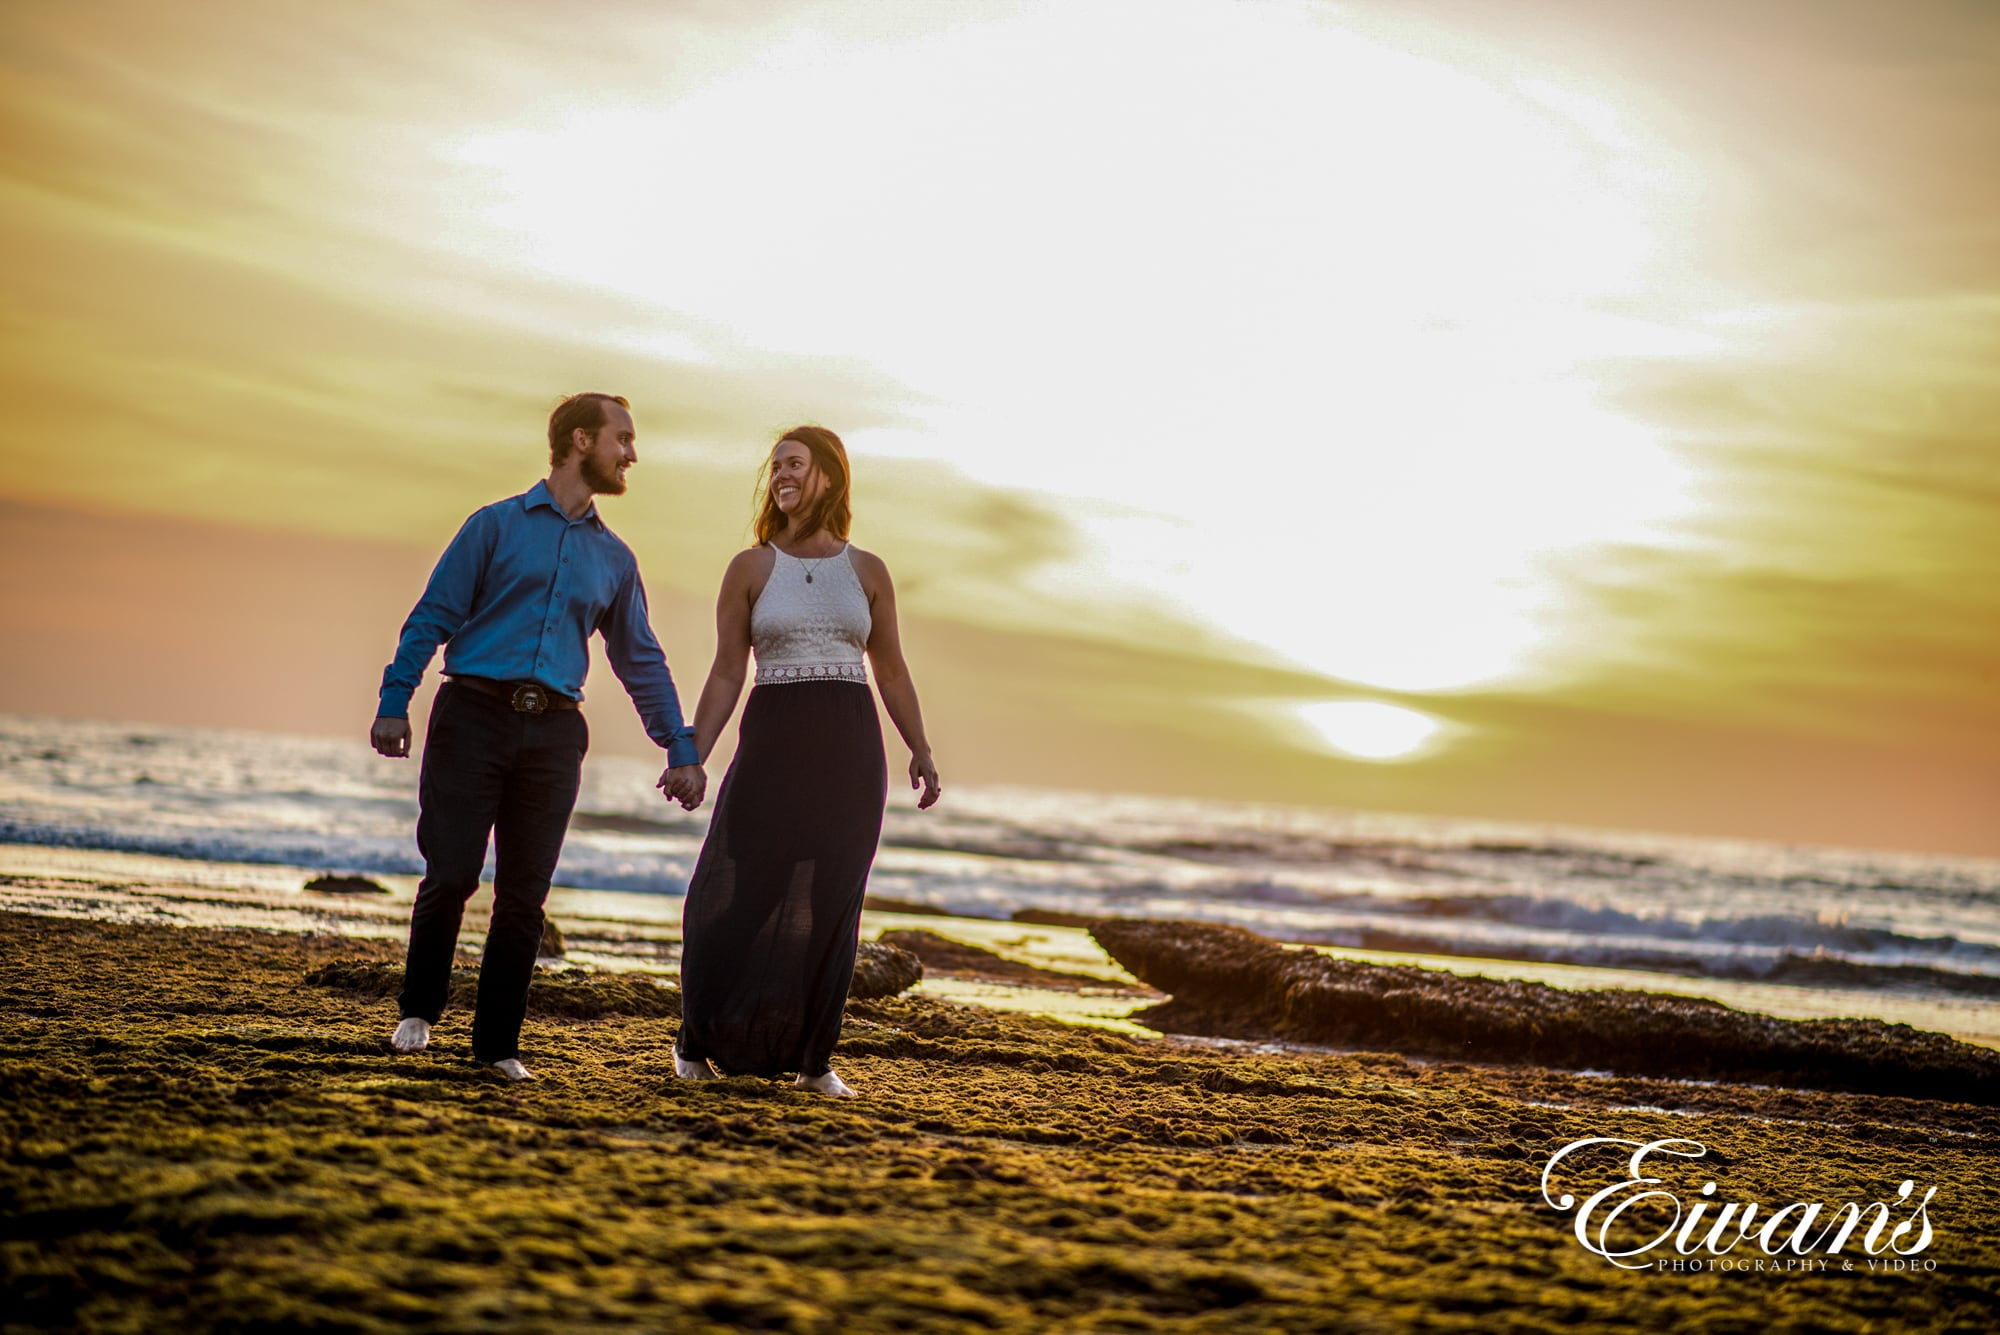 Image of a couple walking on the beach during sunset